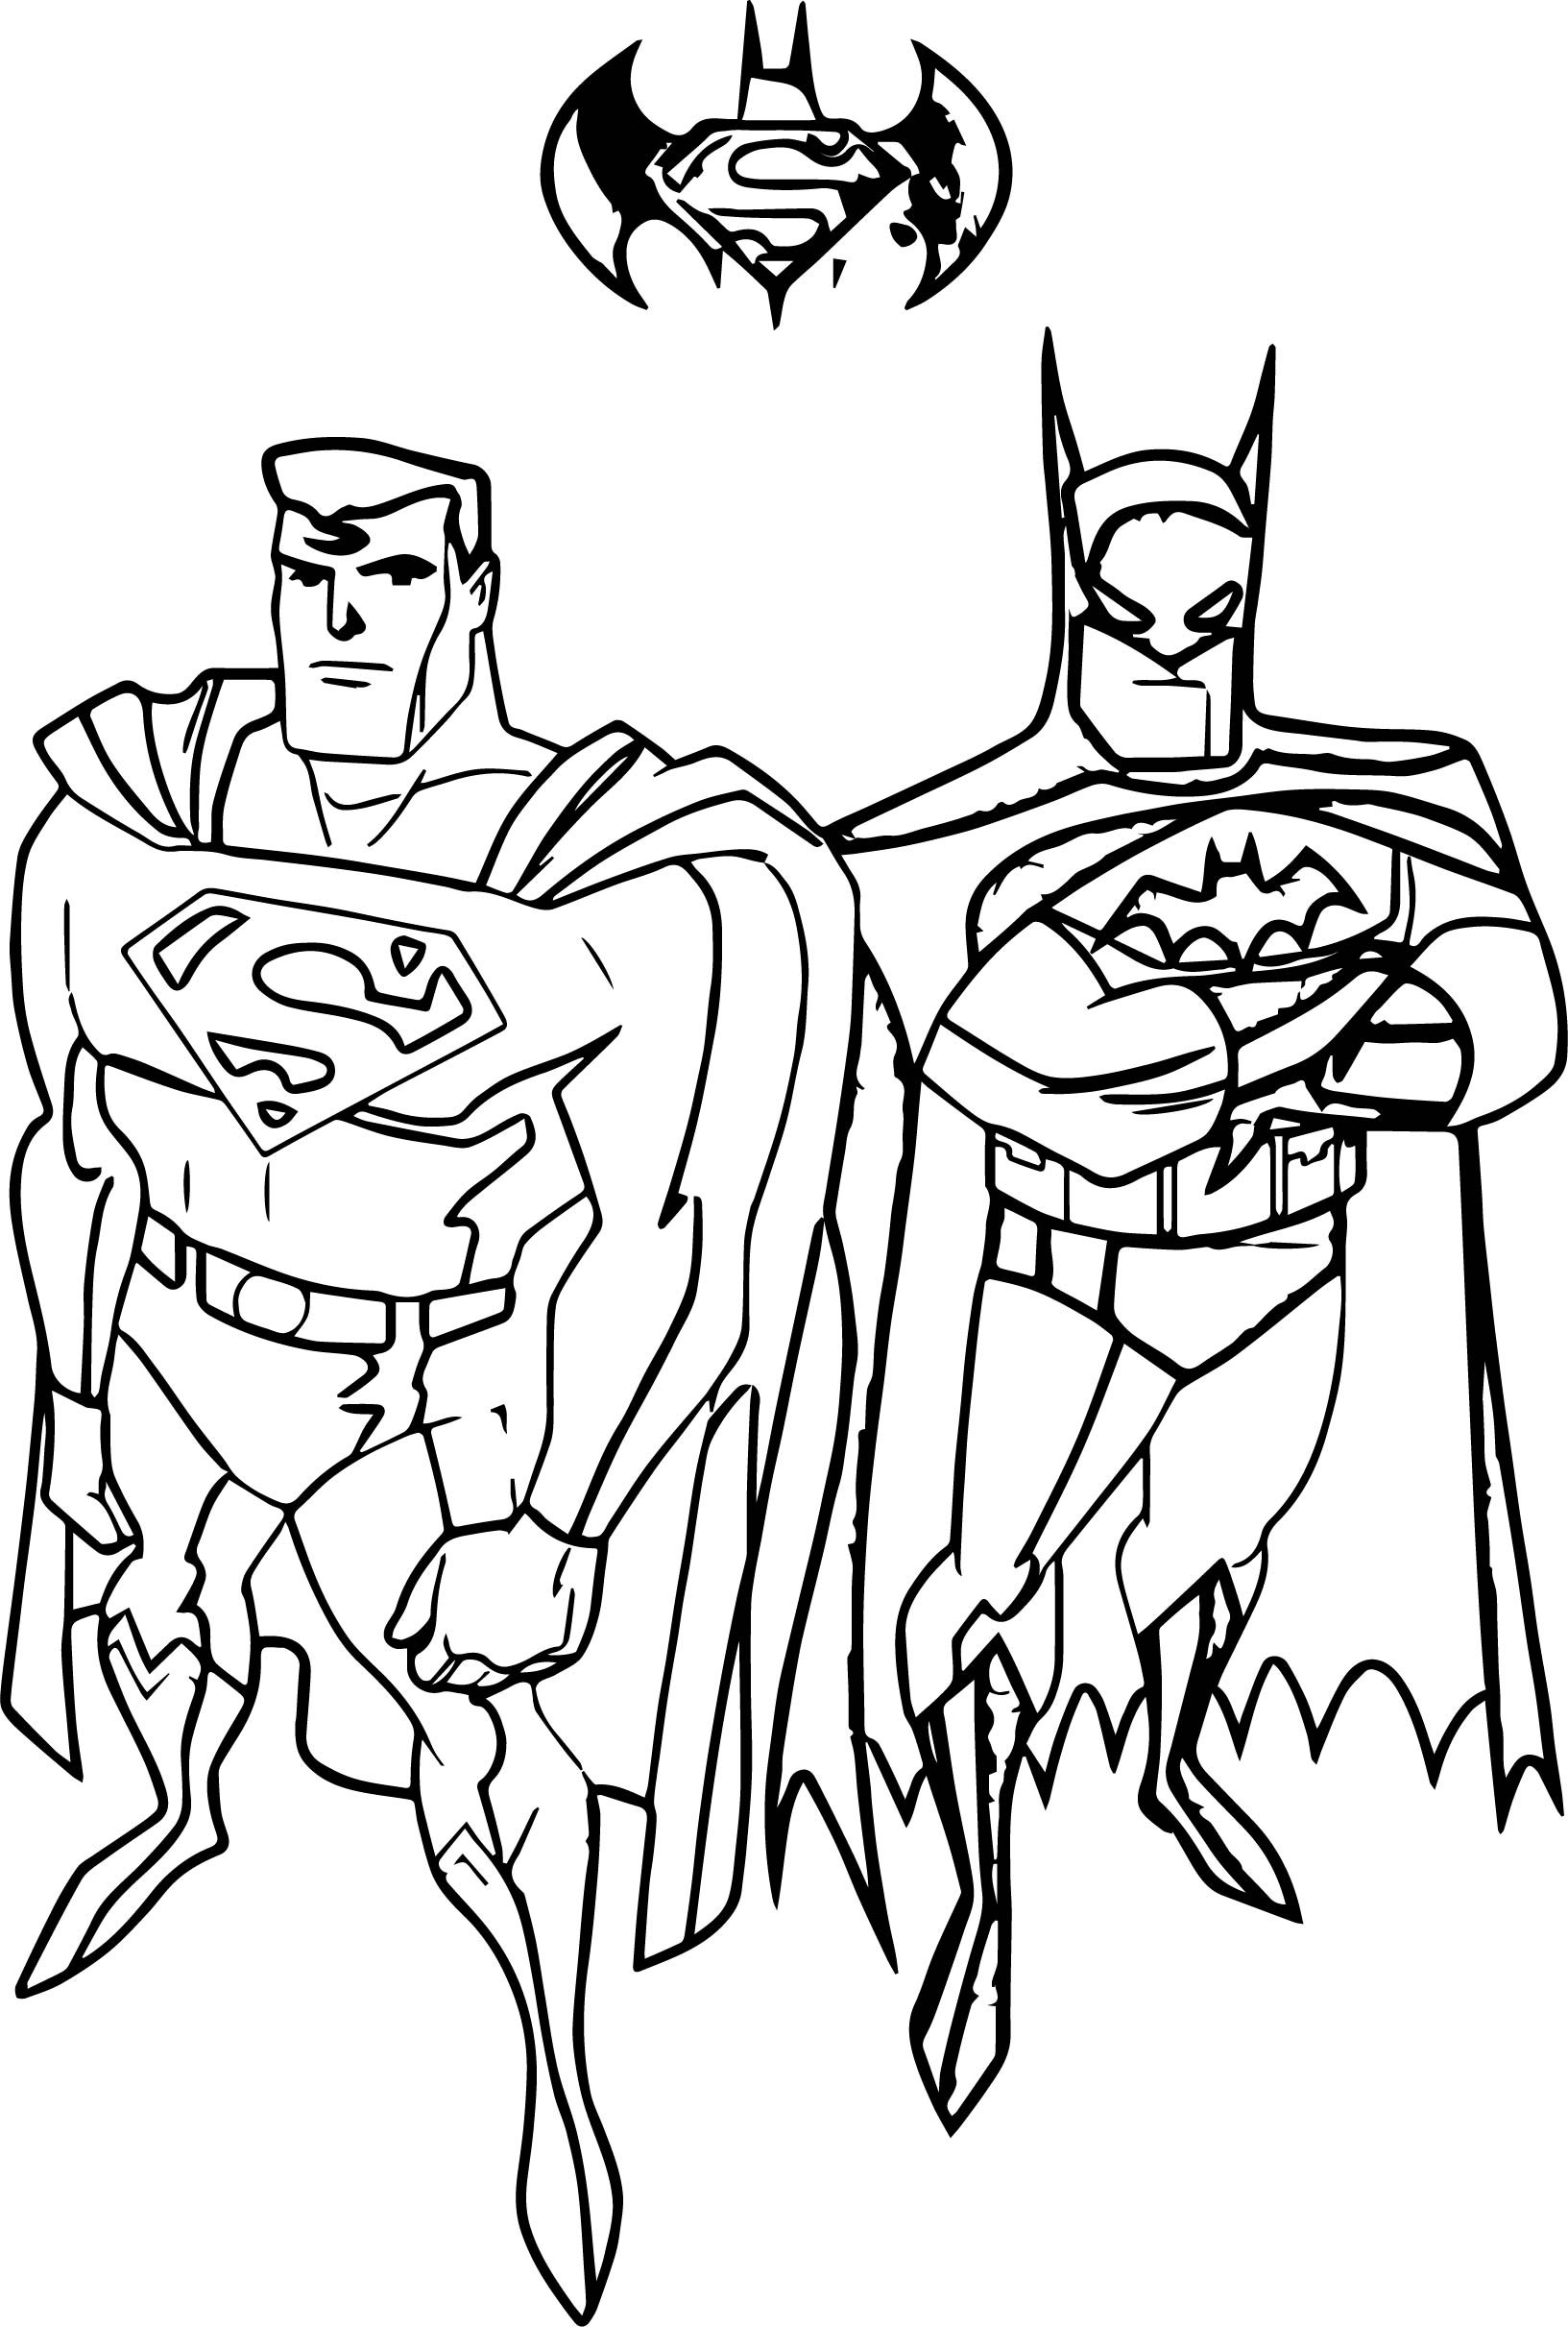 1633x2423 Tcbhy For Superman Coloring Pages On With Hd Resolution